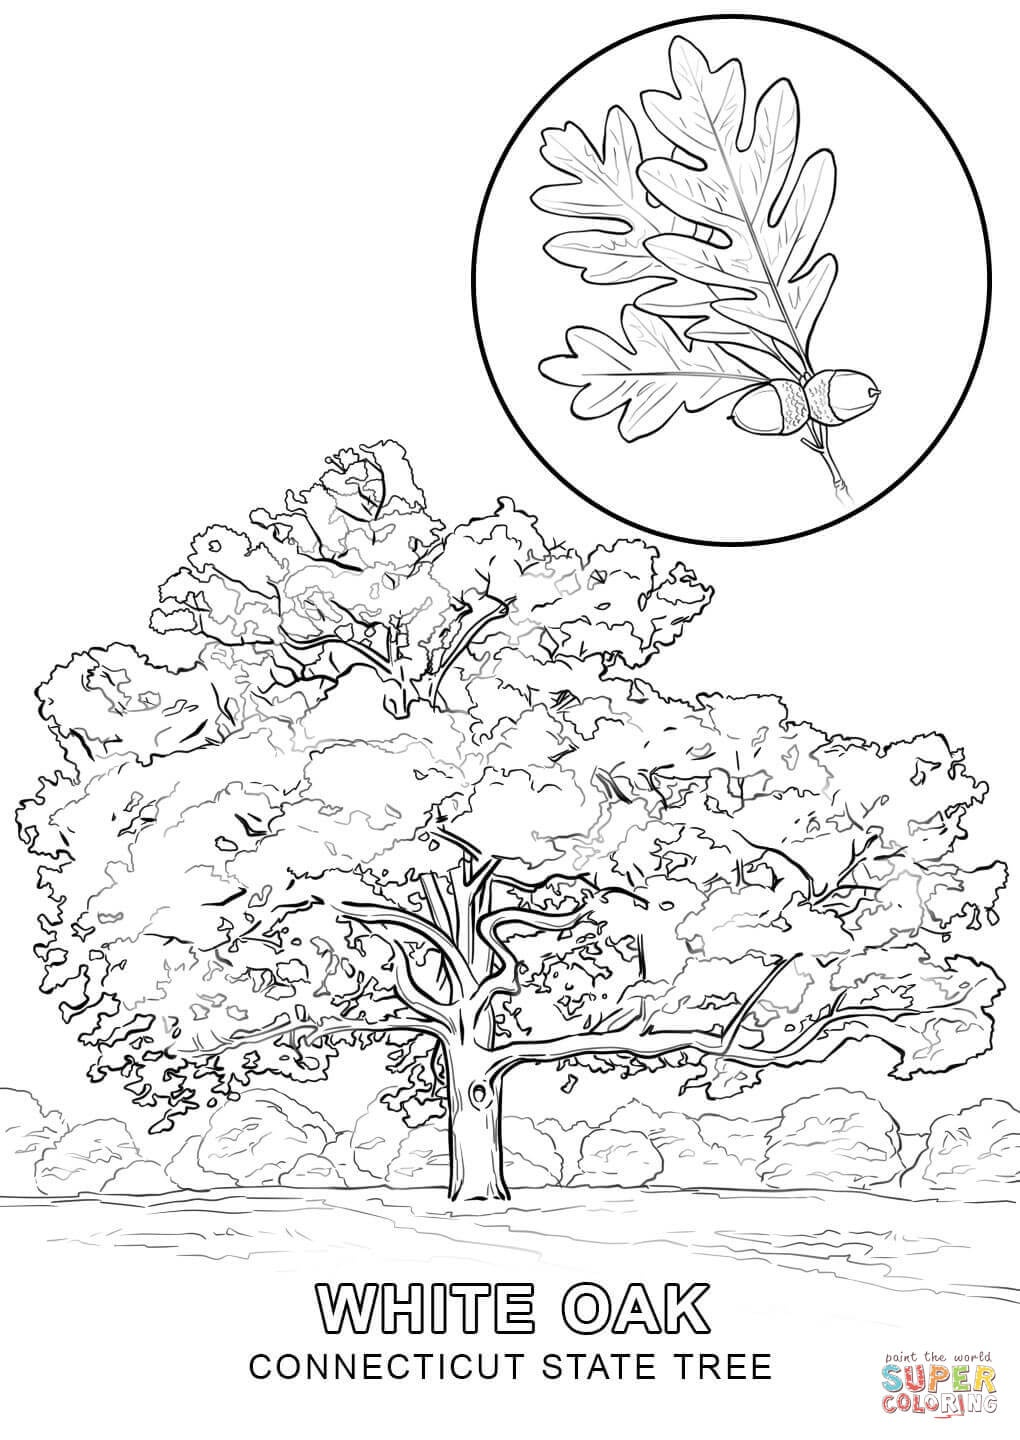 Connecticut State Tree Coloring Page | Free Printable Coloring Pages - Tree Coloring Pages Free Printable